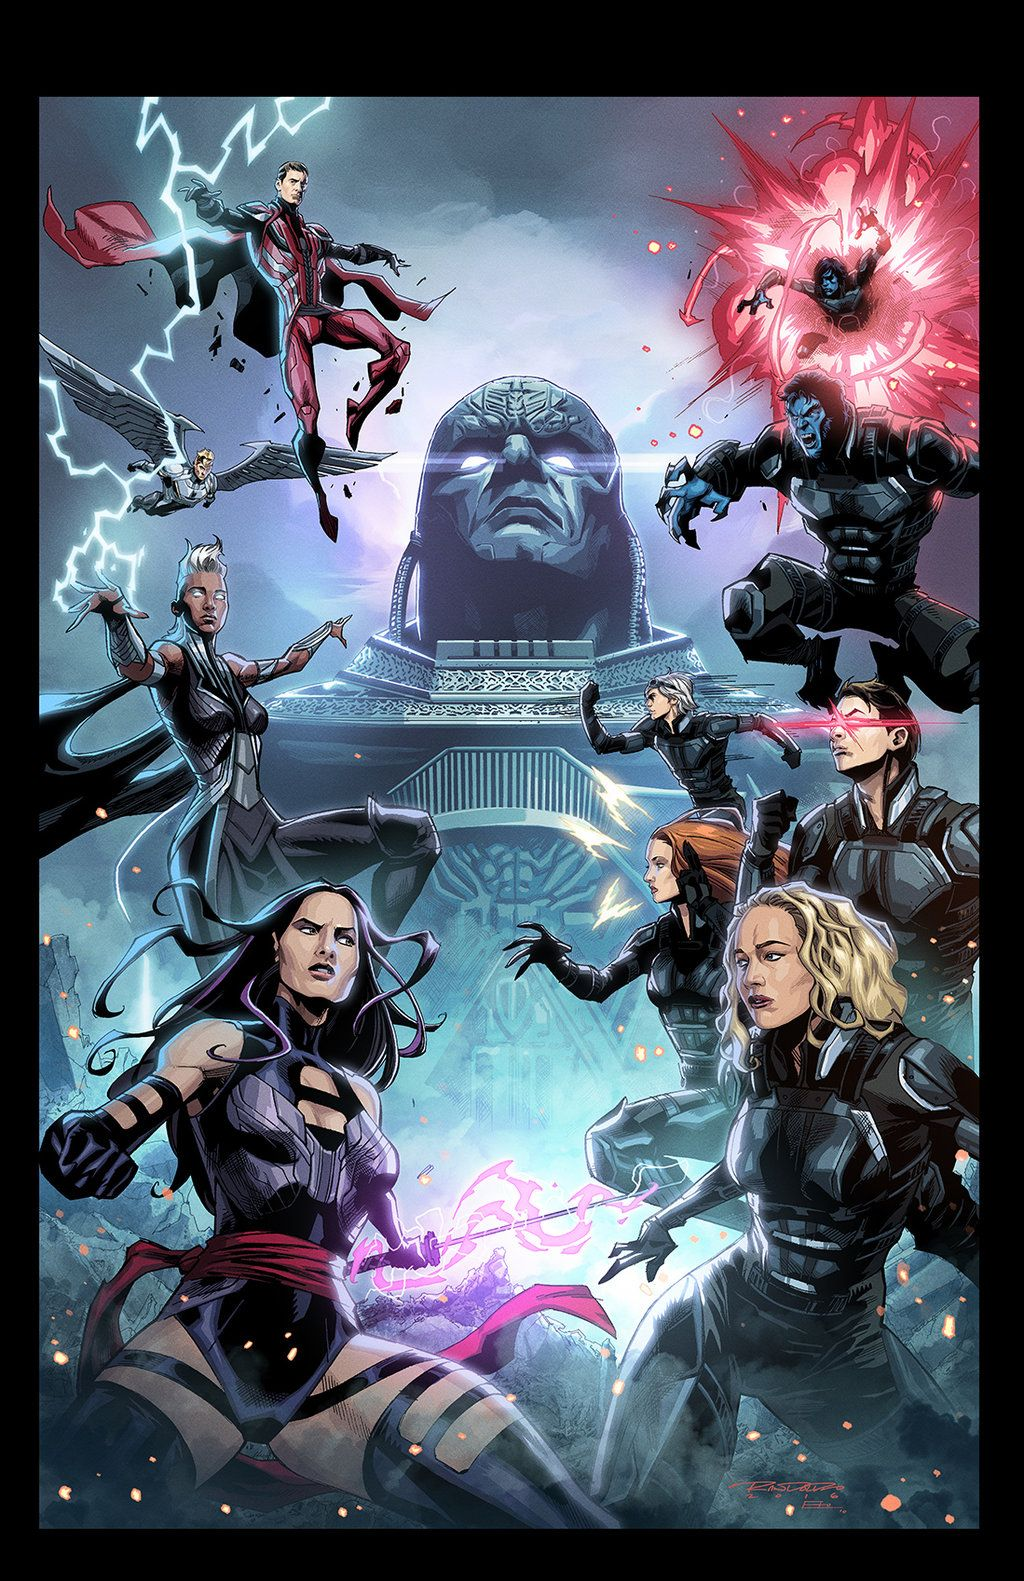 Xmen Apocalypse Vs By E Mann On Deviantart Apocalypse Marvel Xmen Apocalypse Marvel Superheroes